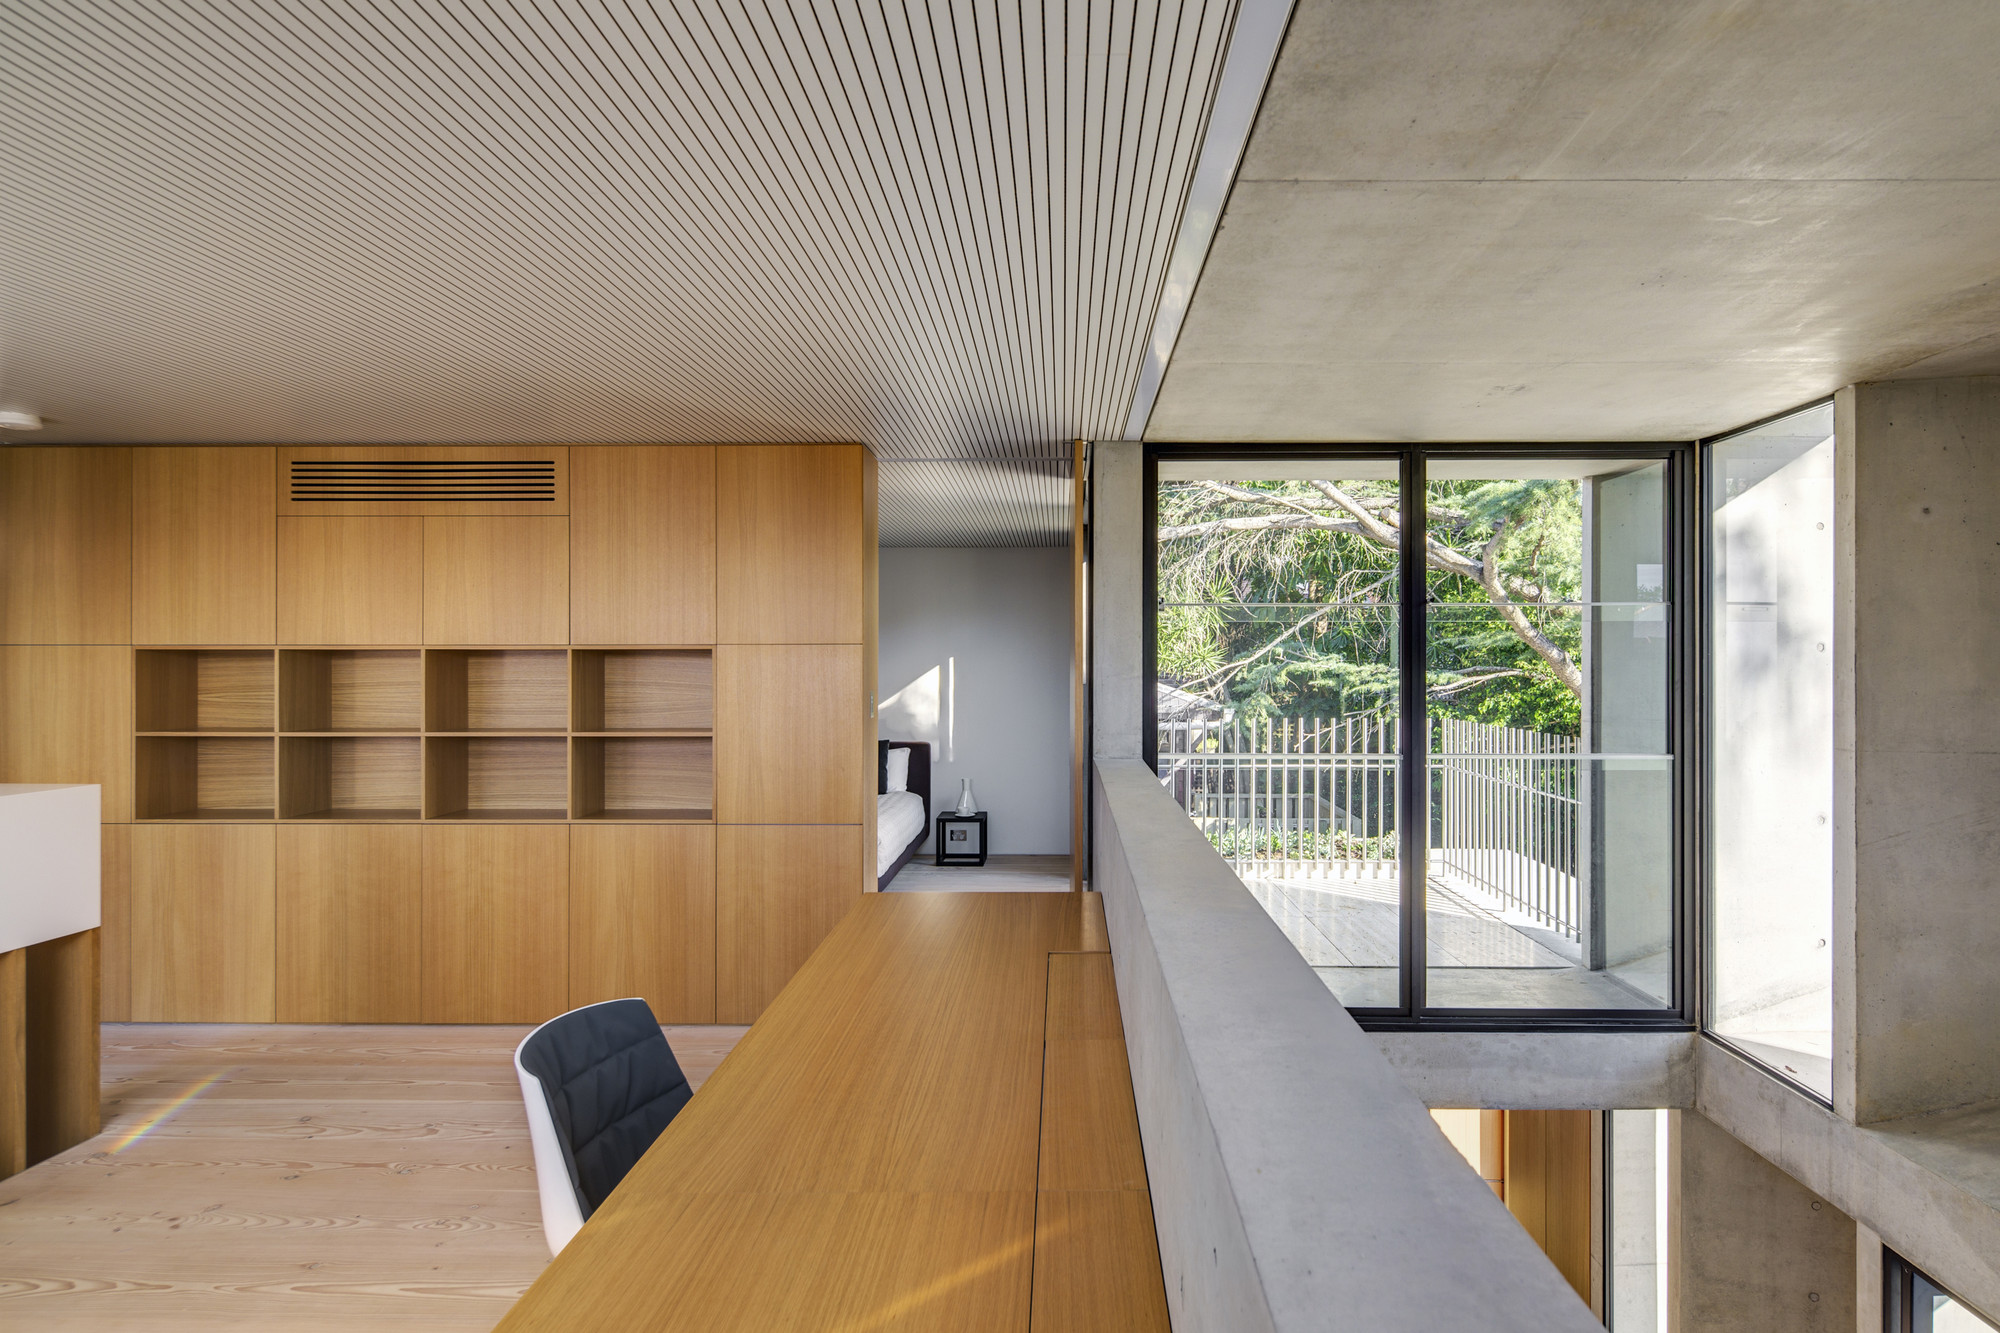 Glebe House by Nobbs Radford Architects (via Lunchbox Architect)